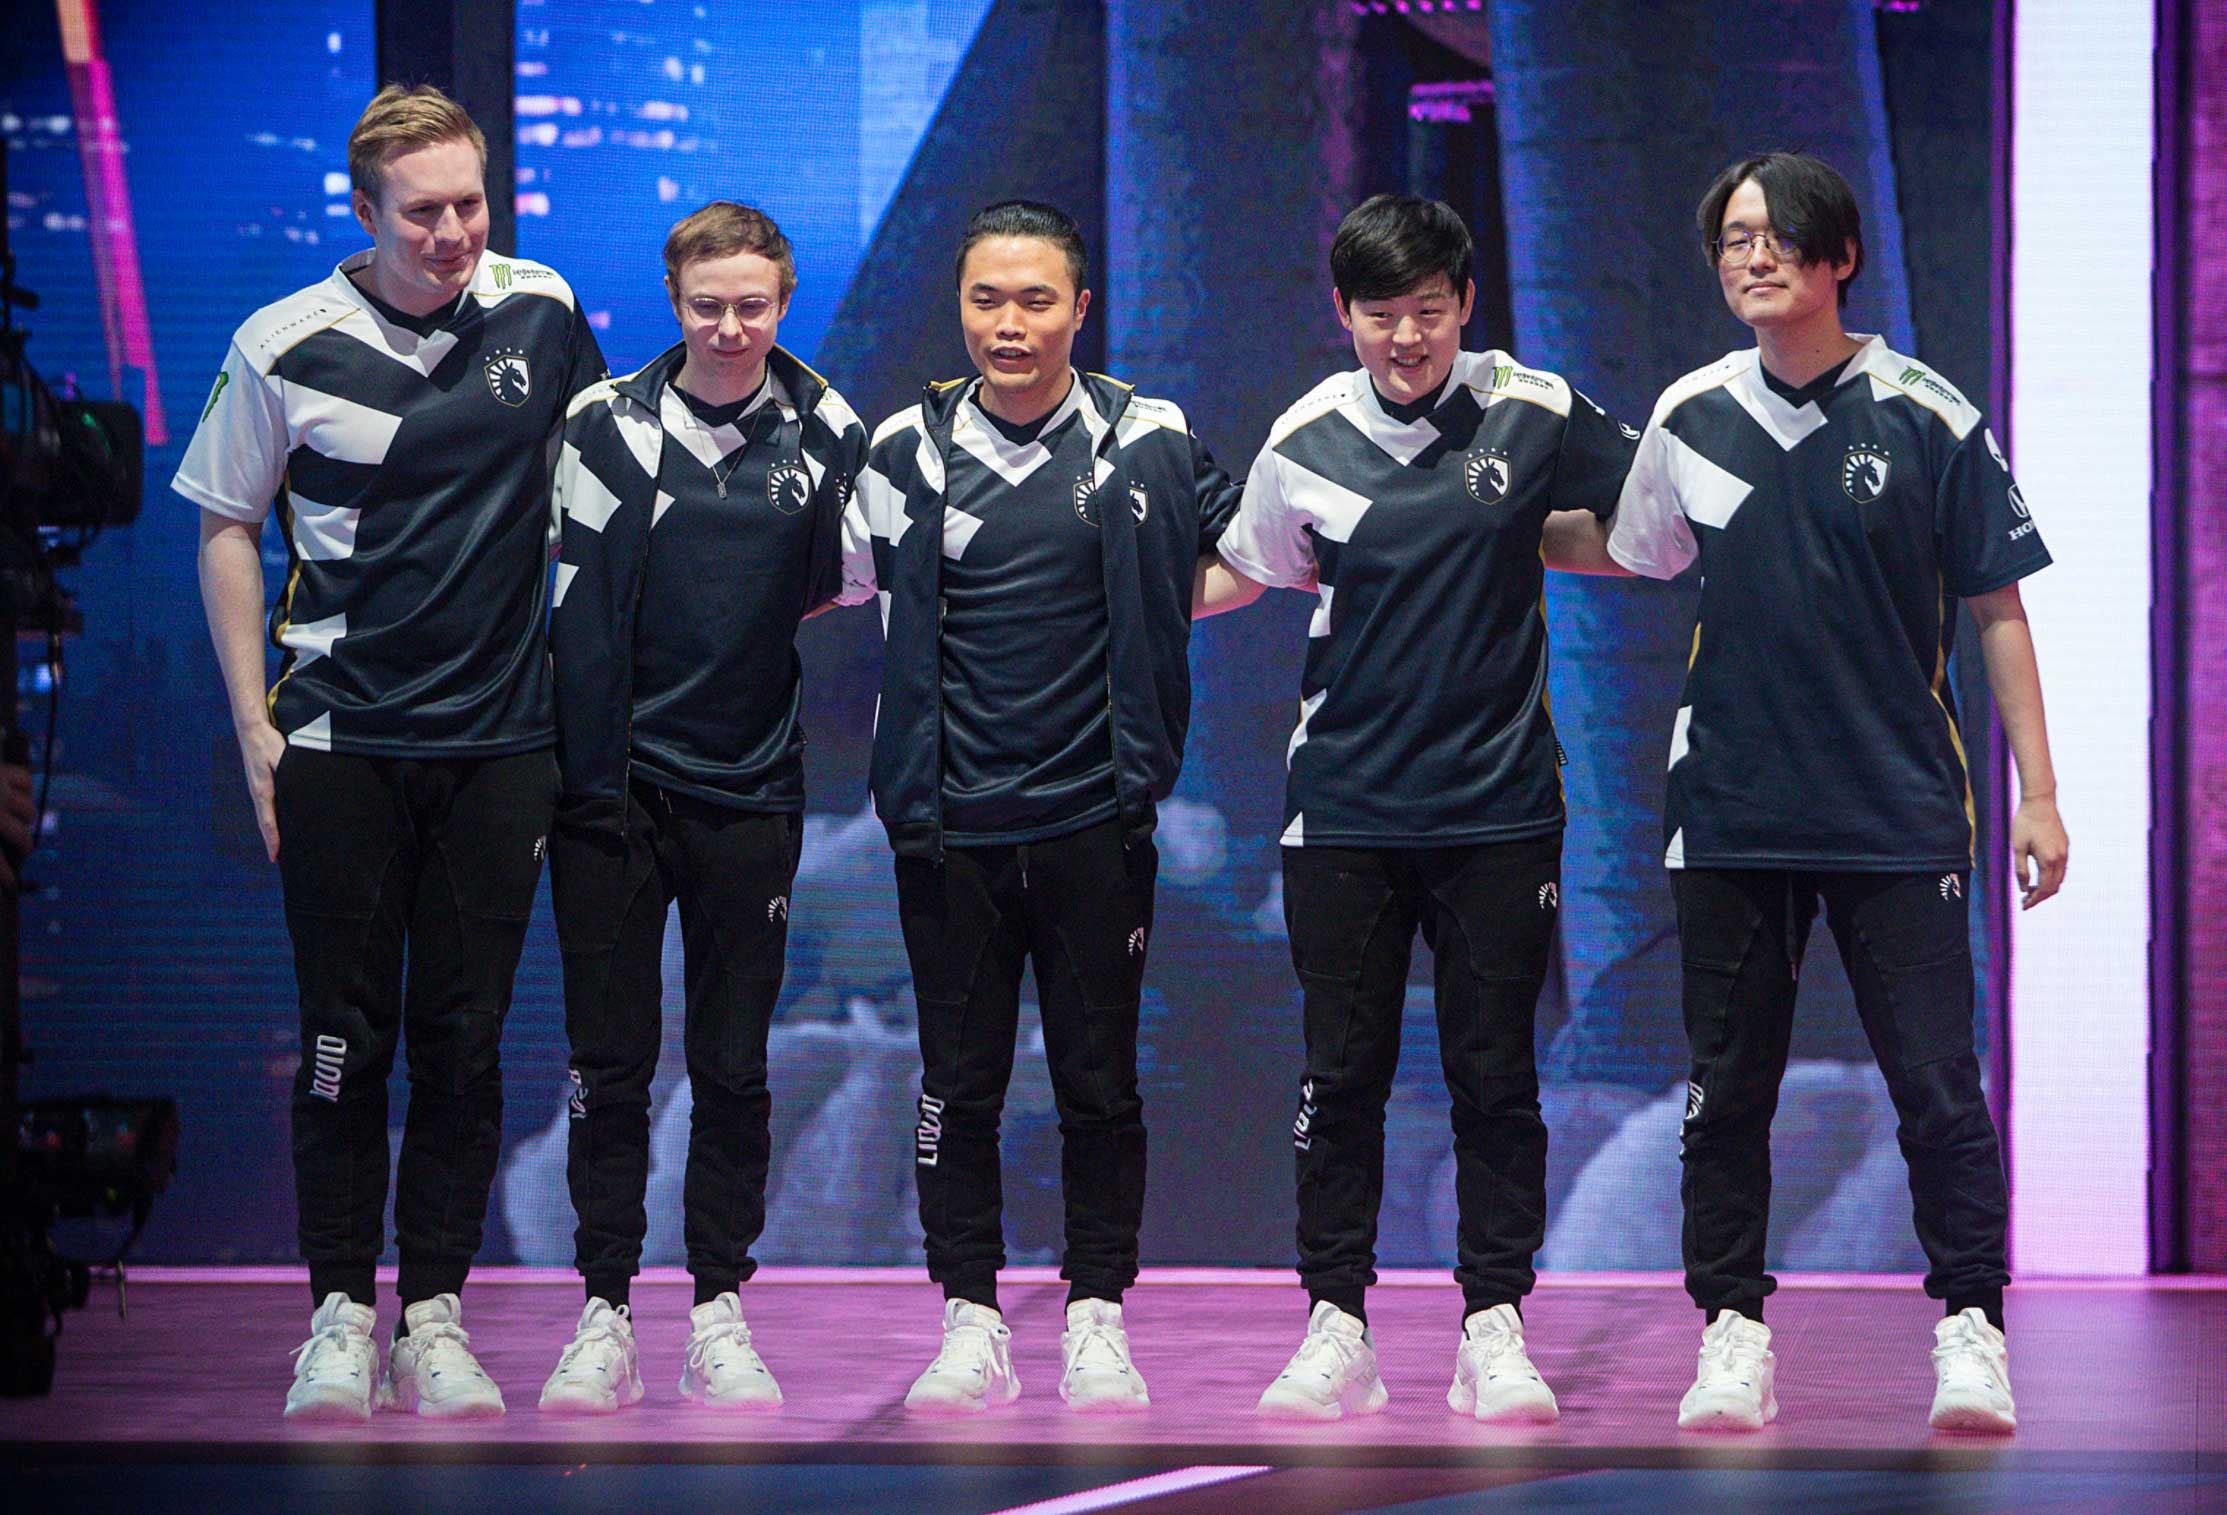 Team Liquid are a juggernaut in esports